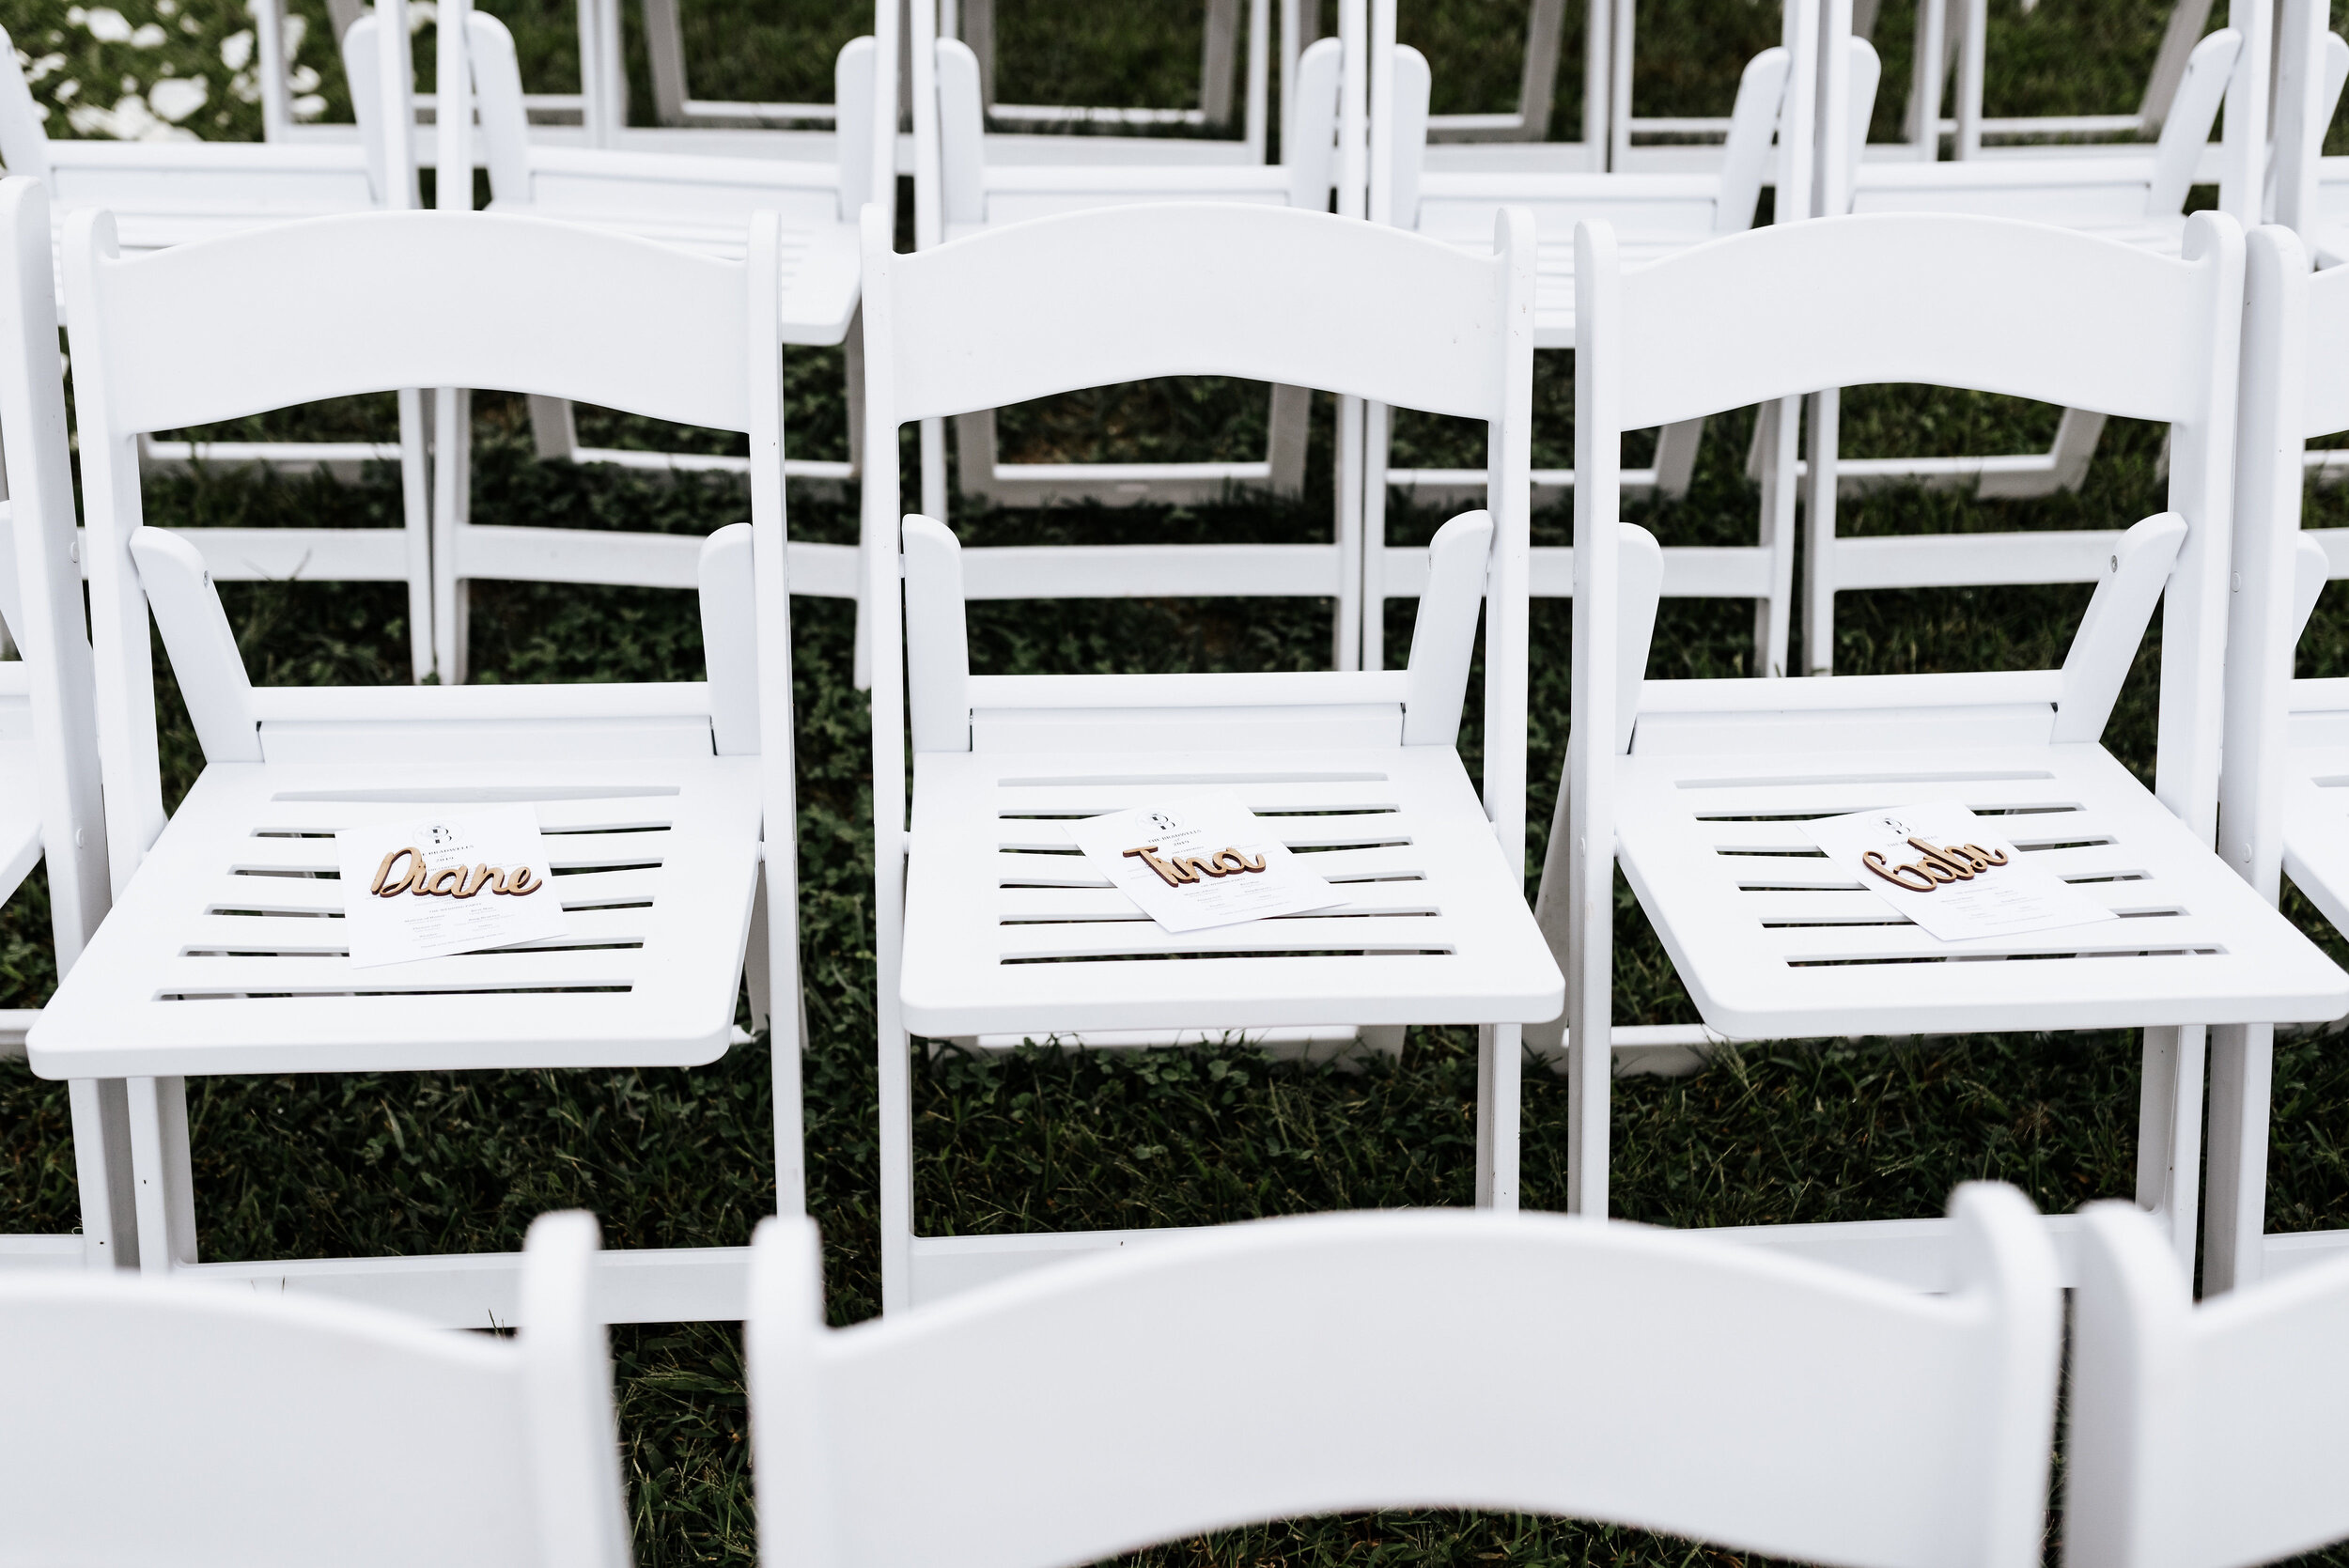 Allison_Nolan_Moss_Vineyards_Wedding_Charlottesville_Virginia_Photography_by_V_37.jpg